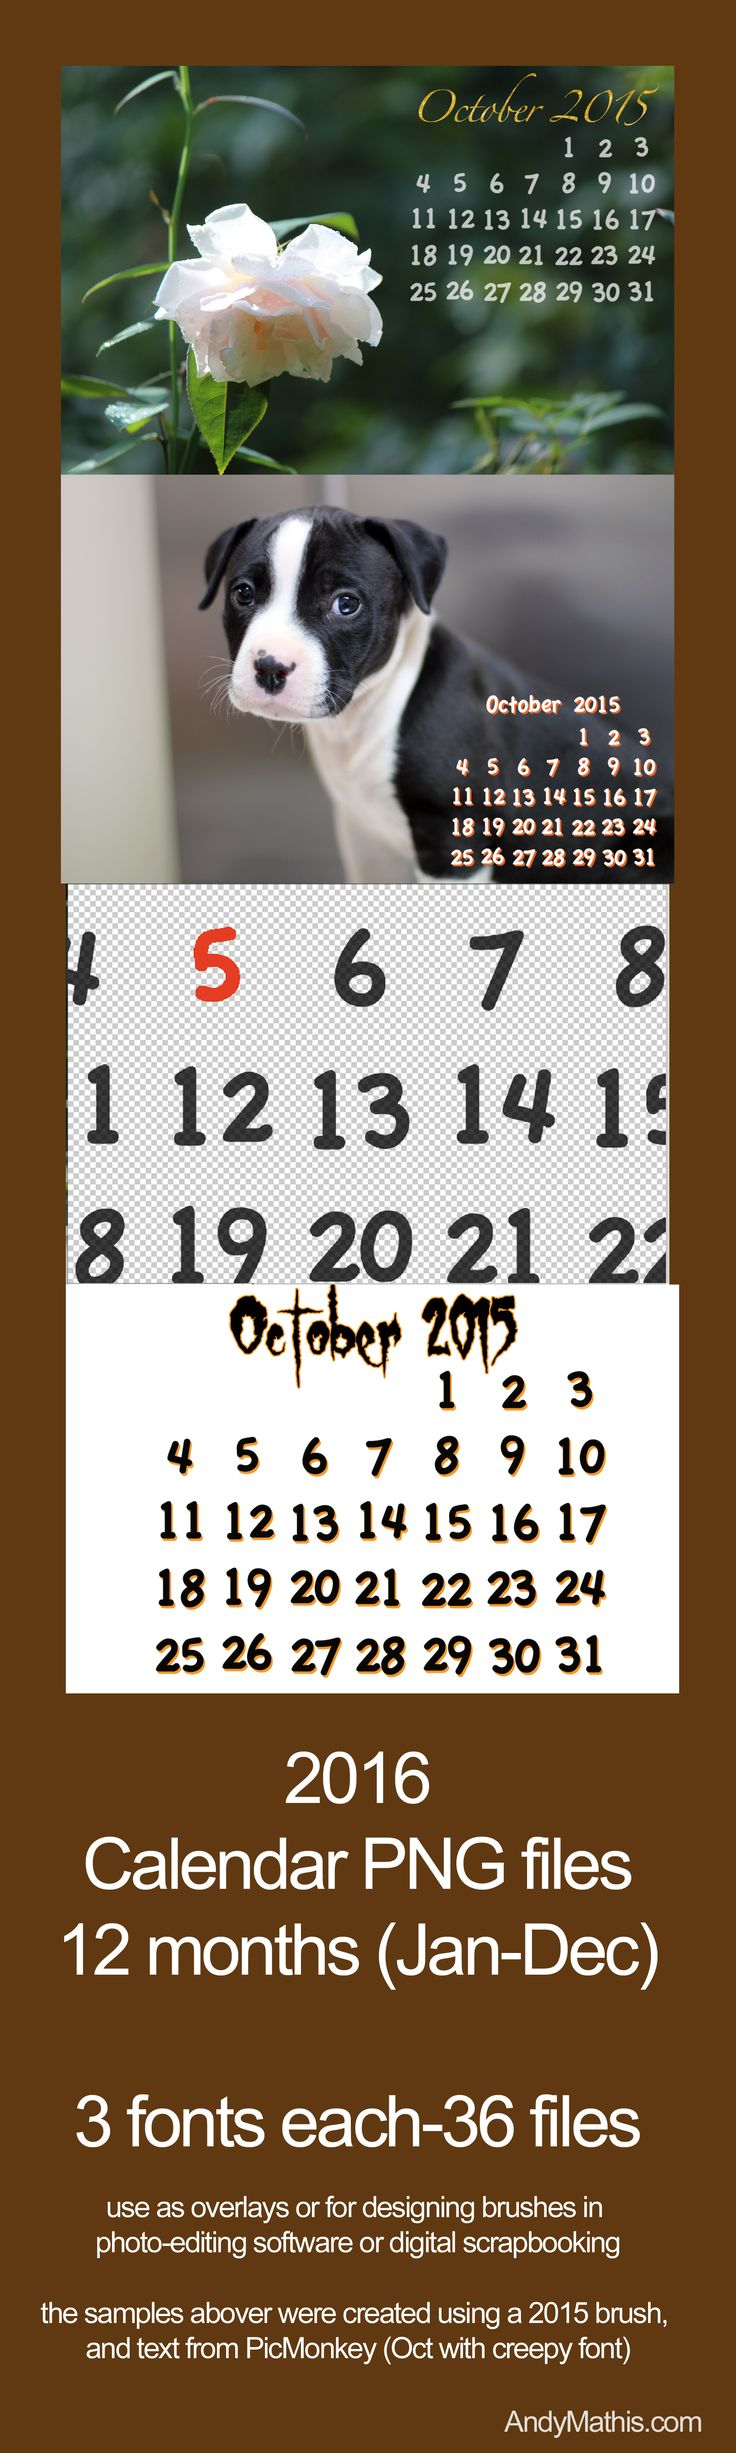 2016 calendar png files use as overlays or to make text brushes lots of